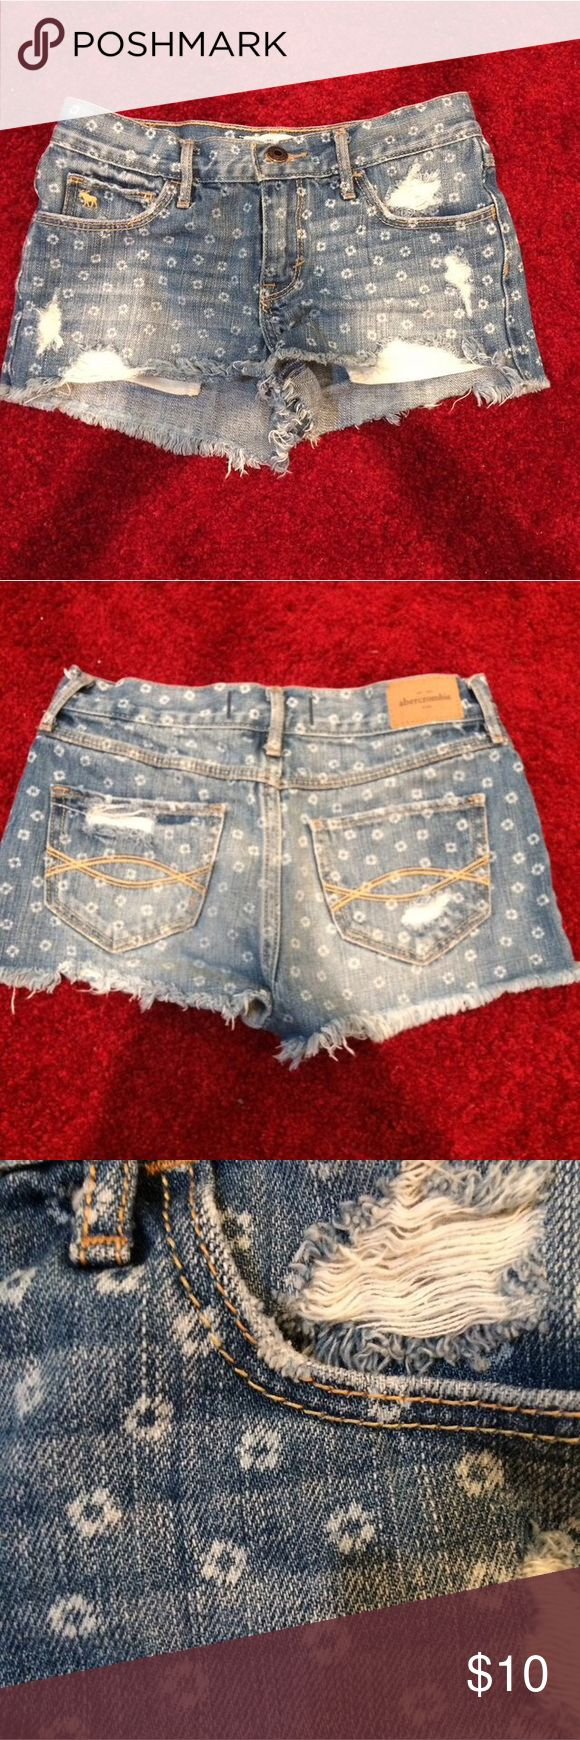 Abercrombie kids denim shorts These are super adorable and perfect for summer. Fits a kids 14 or a women's 00 or 24 Abercombie Kids Bottoms Shorts